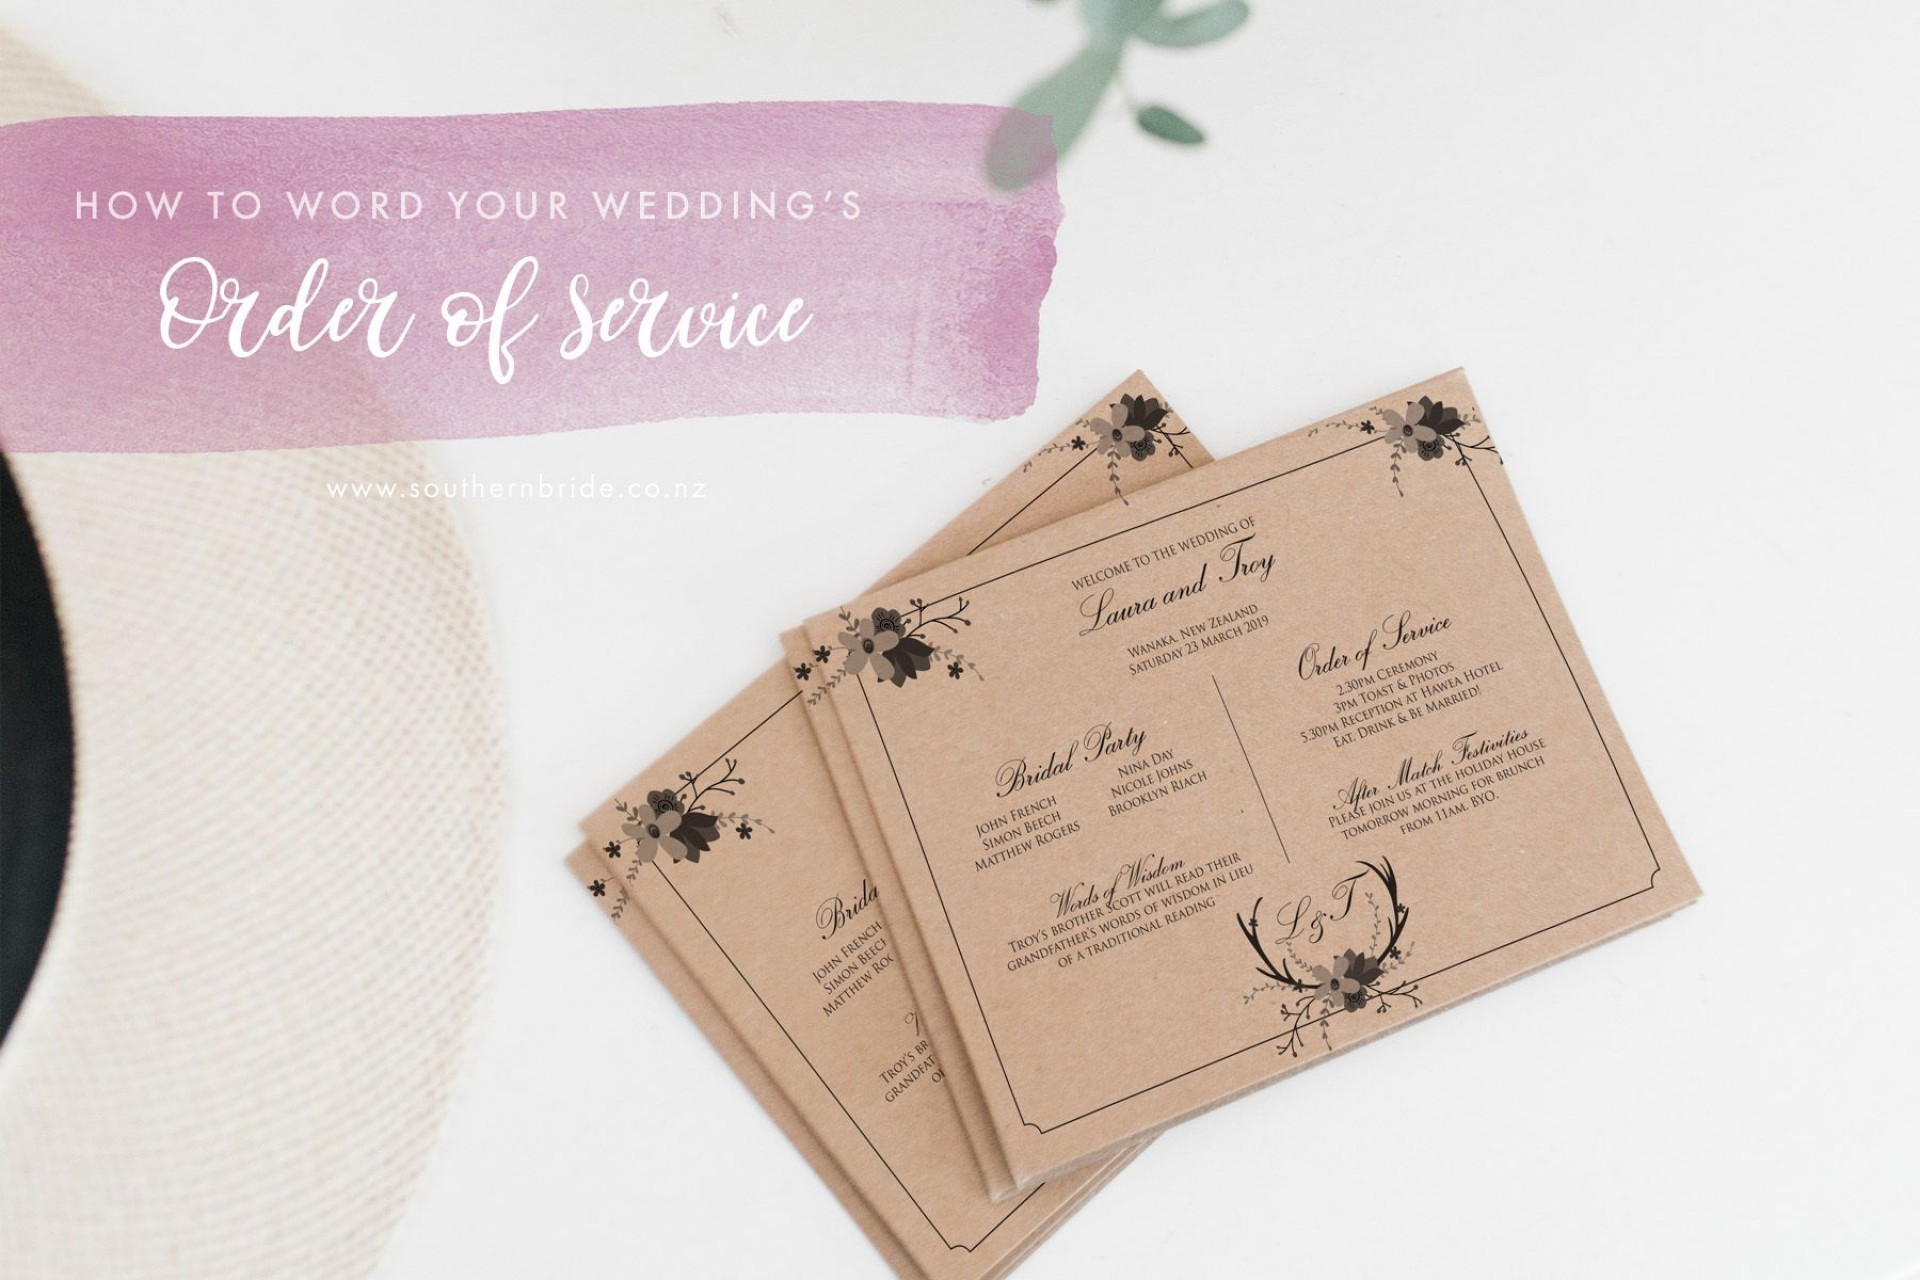 005 Fearsome Wedding Order Of Service Template Word High Definition  Free Microsoft1920